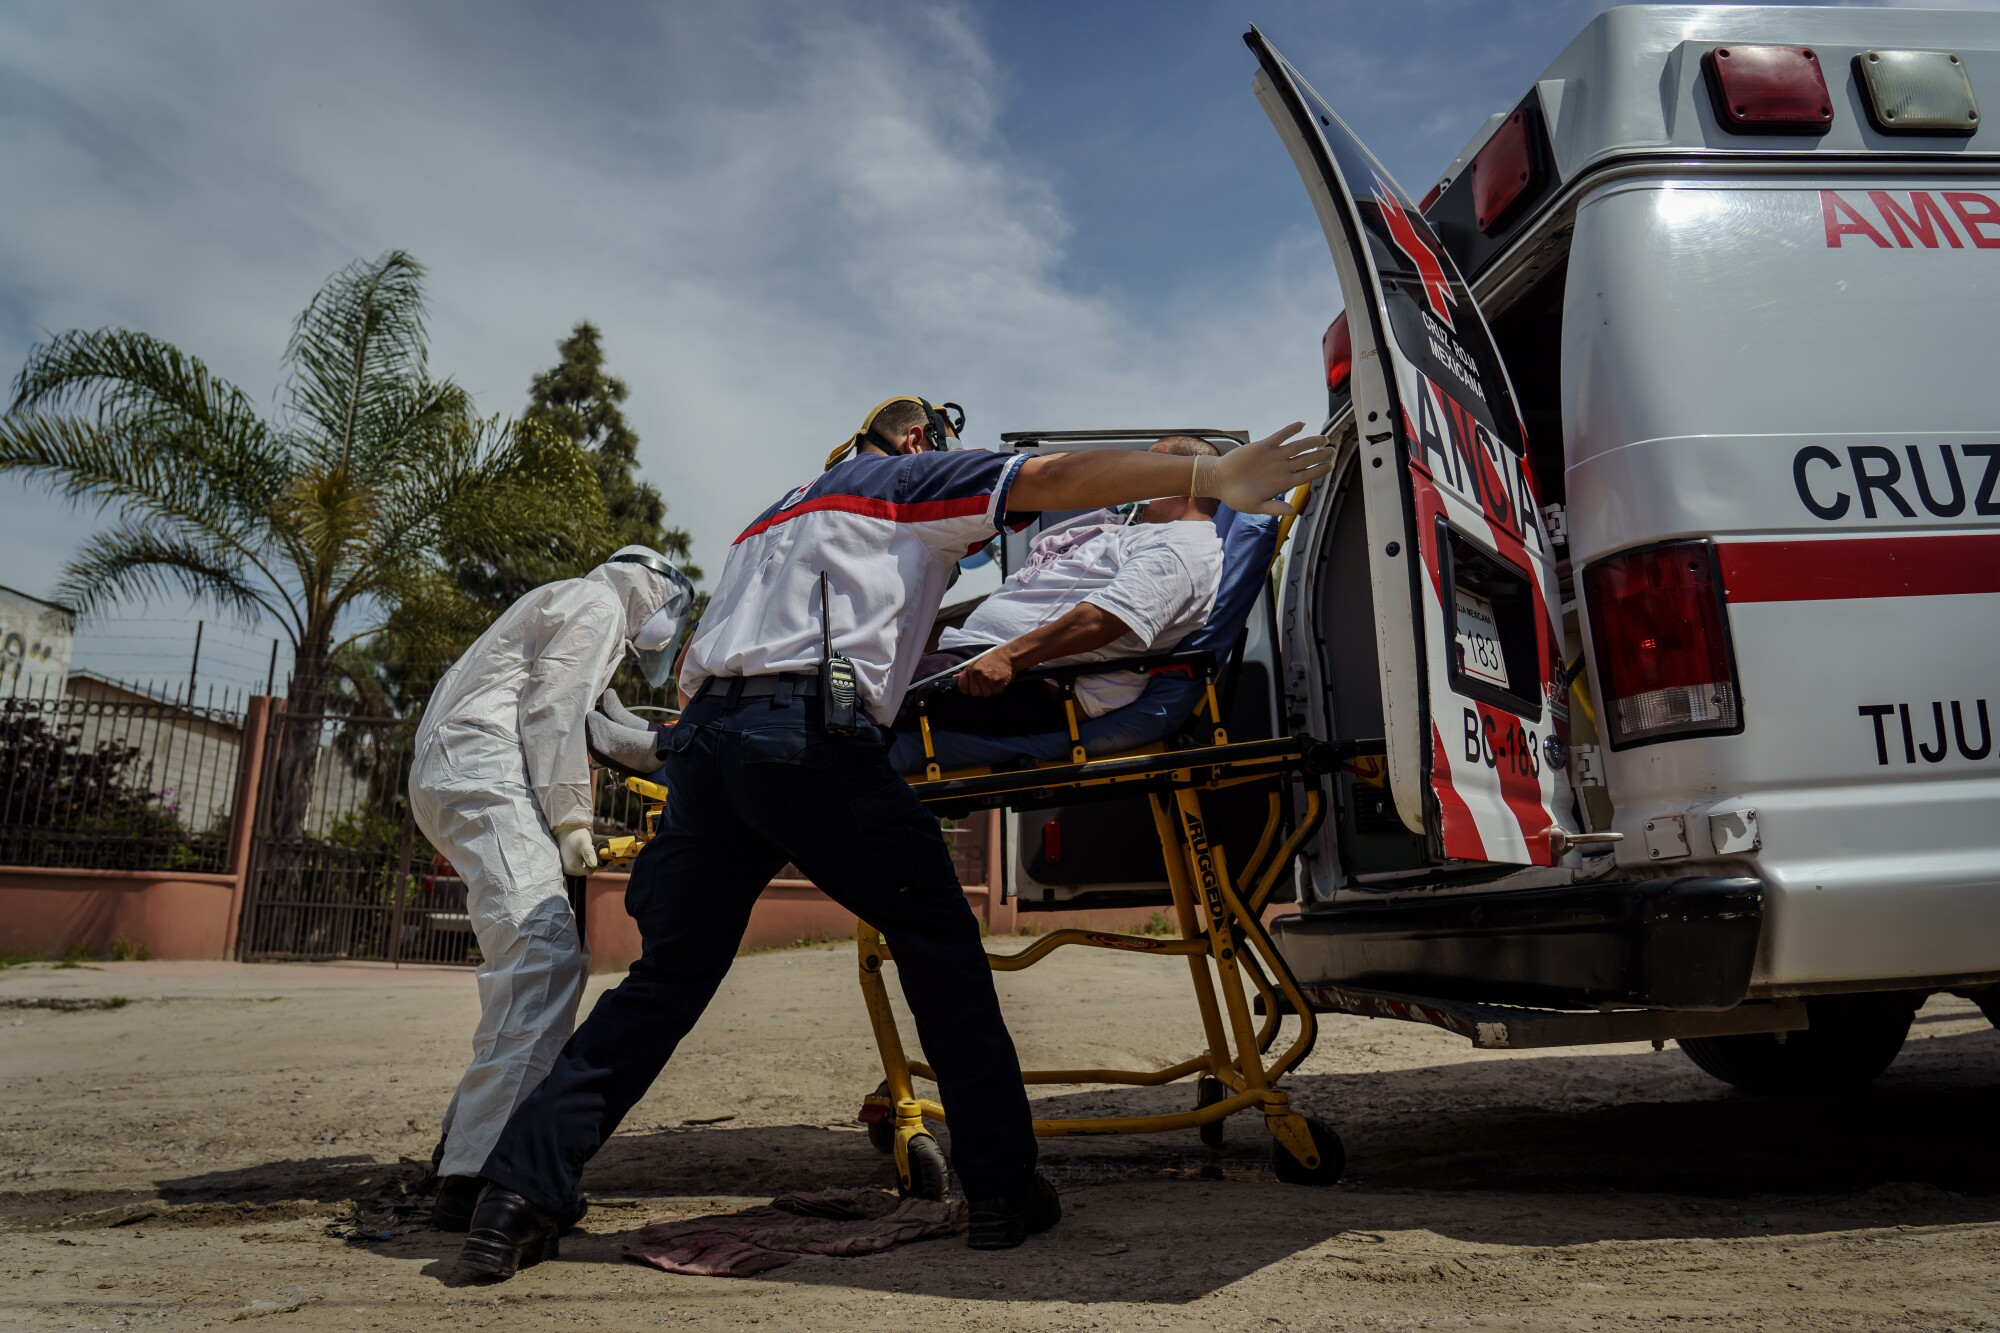 Sergio Garcia swings the ambulance door wide open as Red Cross paramedics help transport Eduardo Dionisio Molina, 41, who has symptoms related to COVID-19, to a nearby hospital from his home in the Ejido Matamoros neighborhood of Tijuana, Mexico, on April 29, 2020.